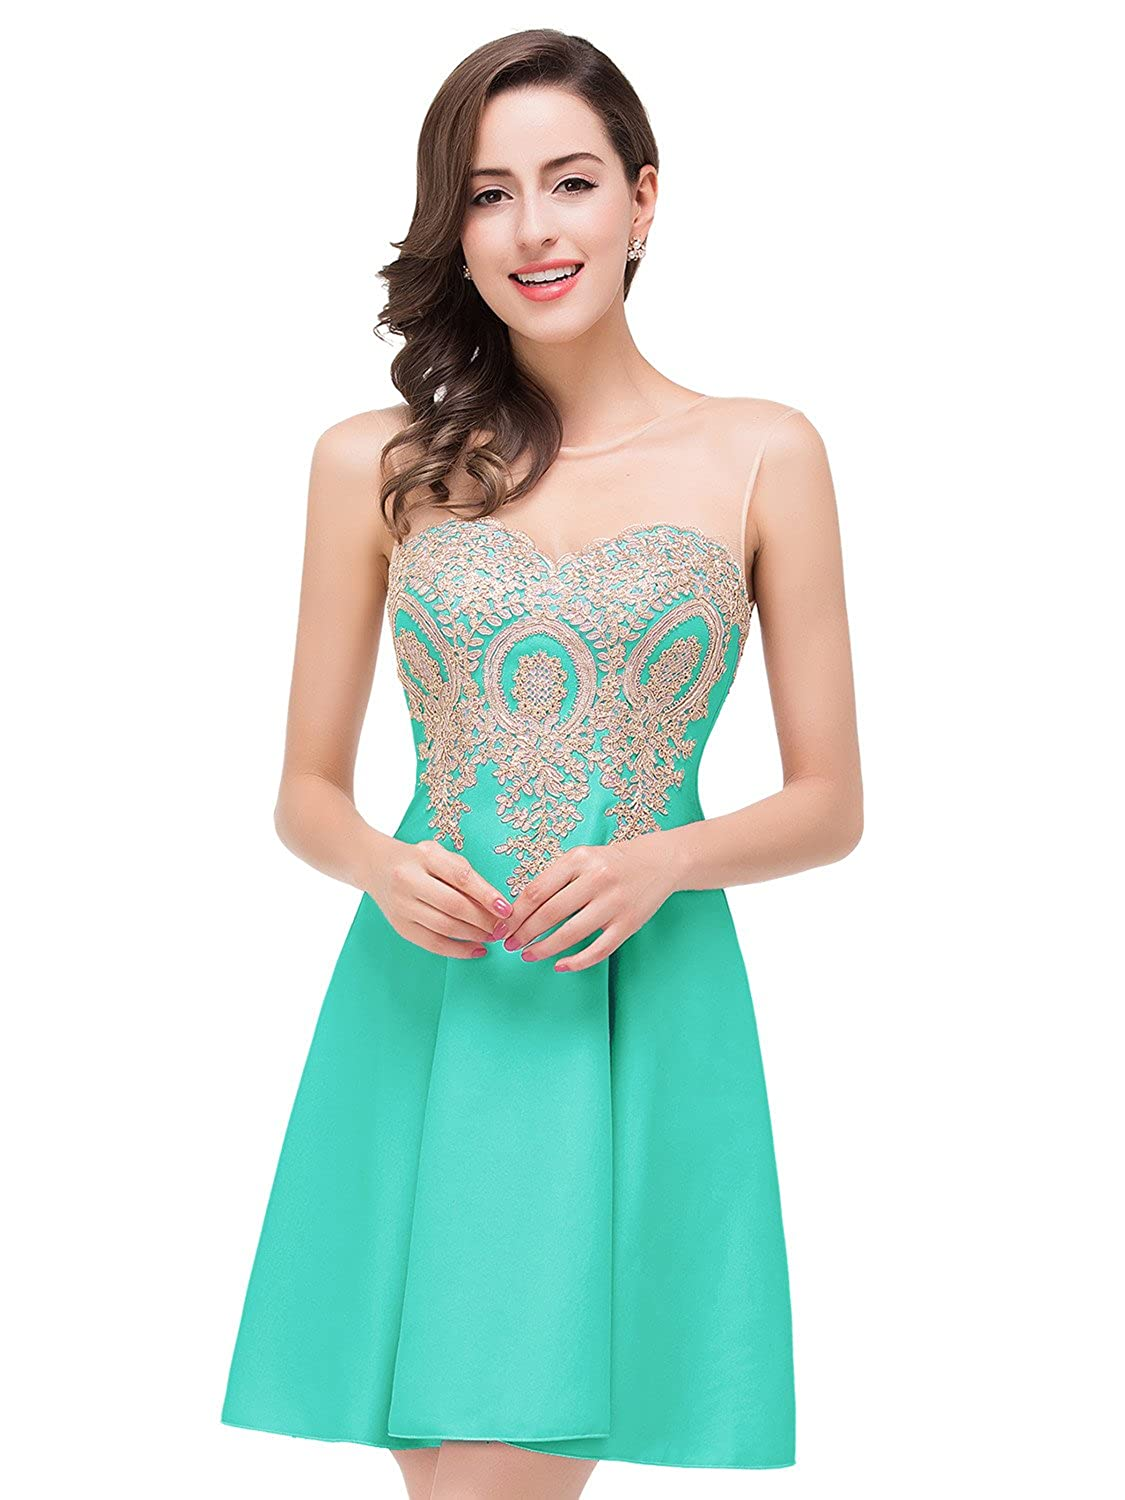 856354f20e6 Babyonline Lace Appliques Short Prom Dresses 2016 Homecoming Dress For  Juniors at Amazon Women s Clothing store